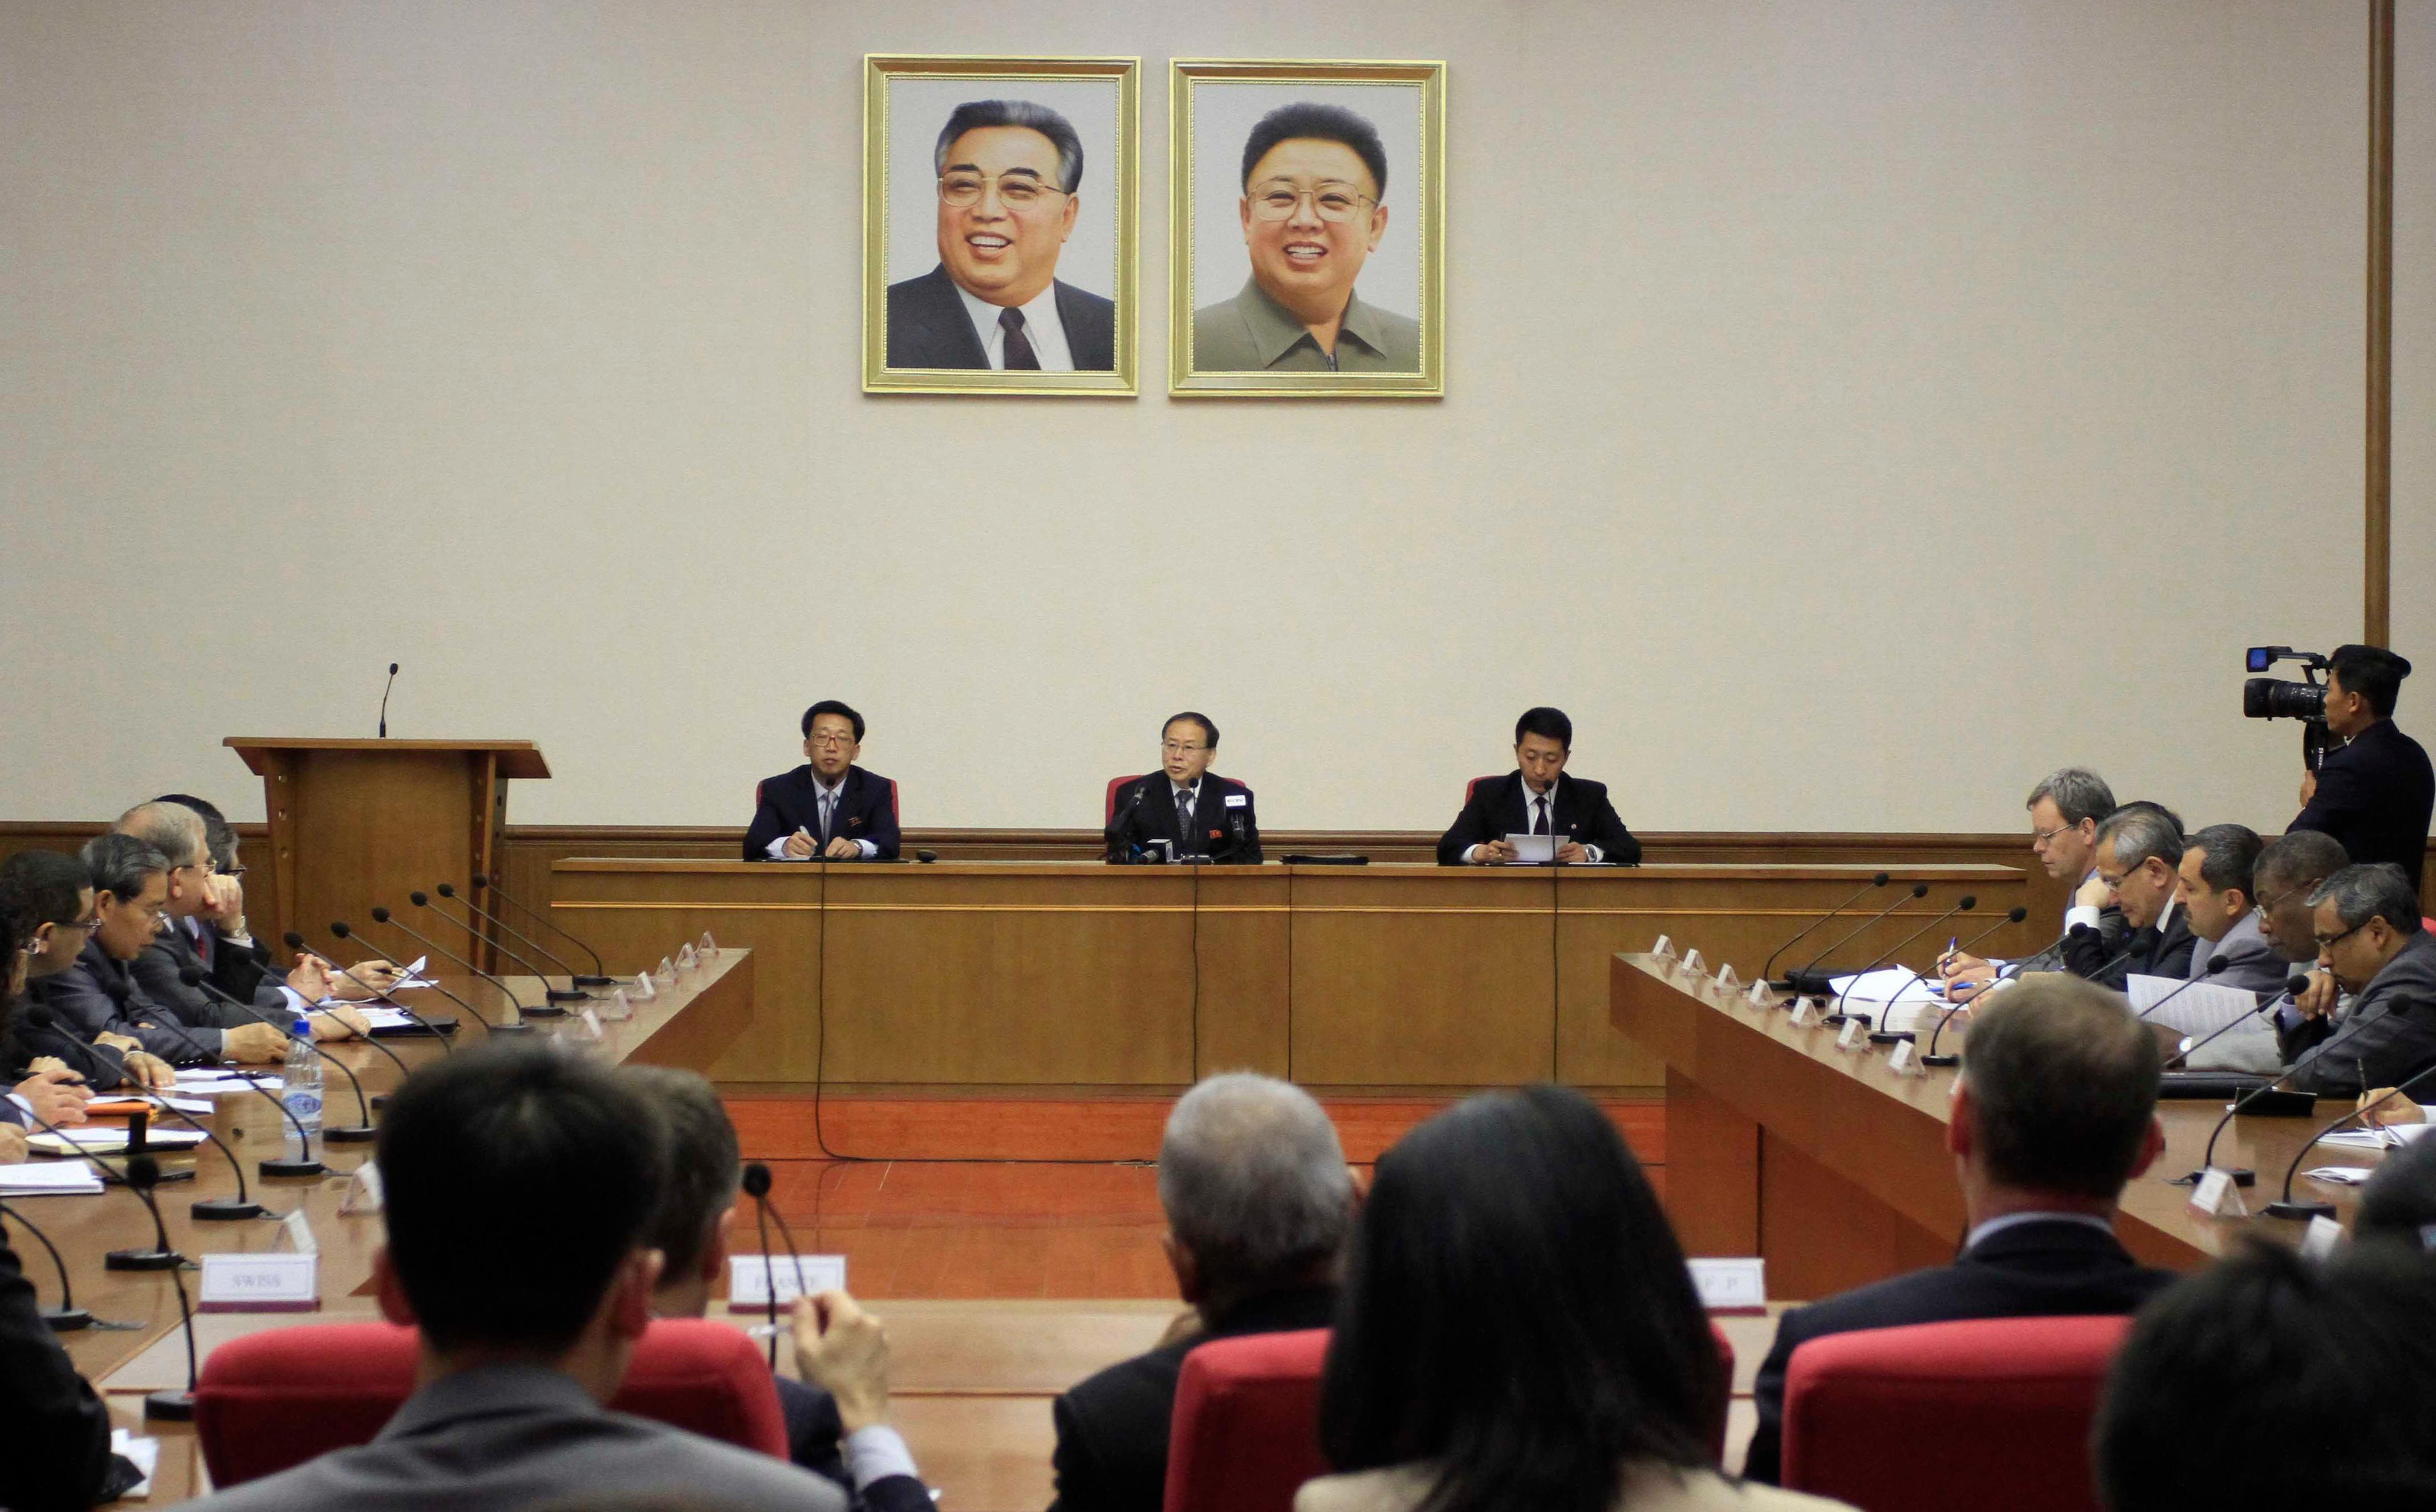 North Korea's Vice Foreign Minister Han Song Ryol, center,  speaks during a meeting at the People's Palace of Culture in Pyongyang, Thursday, May 11, 2017.  Pyongyang will seek the extradition of anyone involved in what it says was a CIA-backed plot to kill leader Kim Jung Un last month with a biochemical poison, Han, a top North Korean foreign ministry official said Thursday.(AP Photo/Jon Chol Jin)